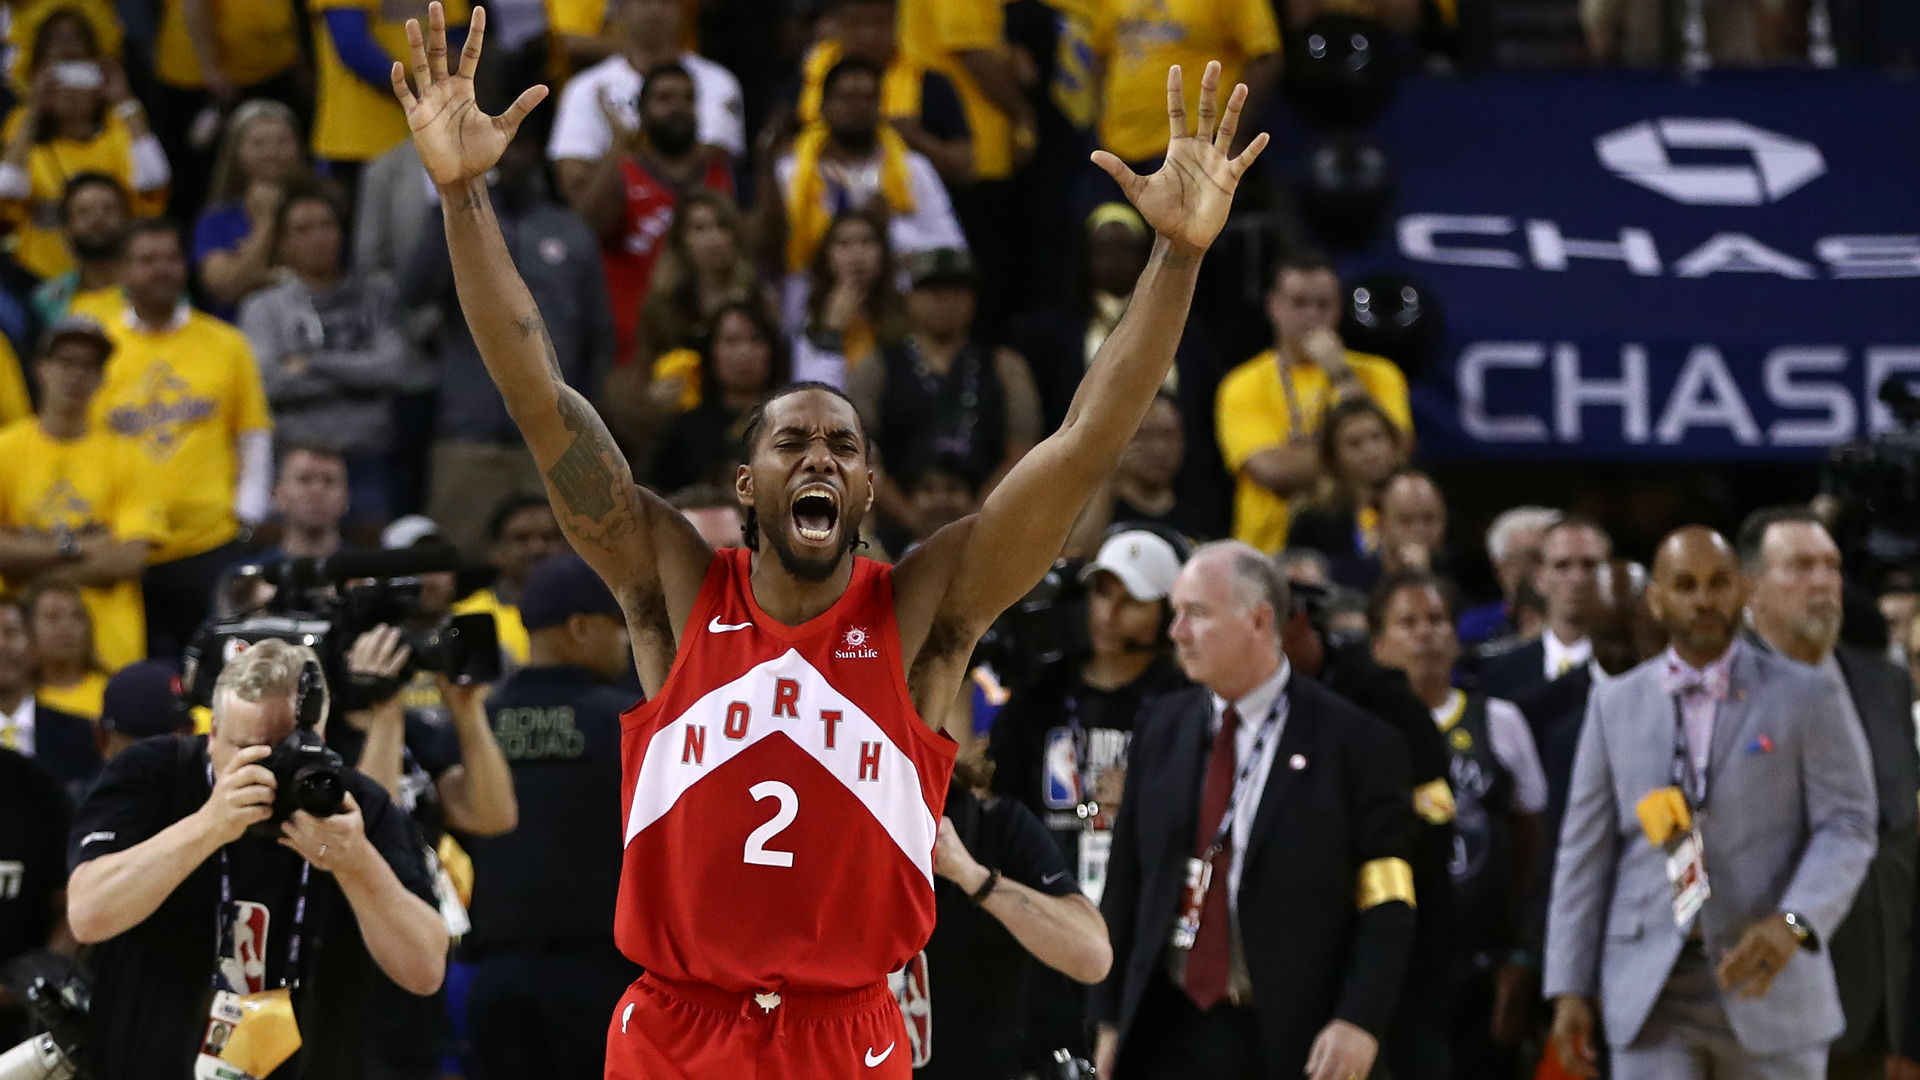 Kawhi Leonard crowned Finals MVP after leading Raptors to first NBA title